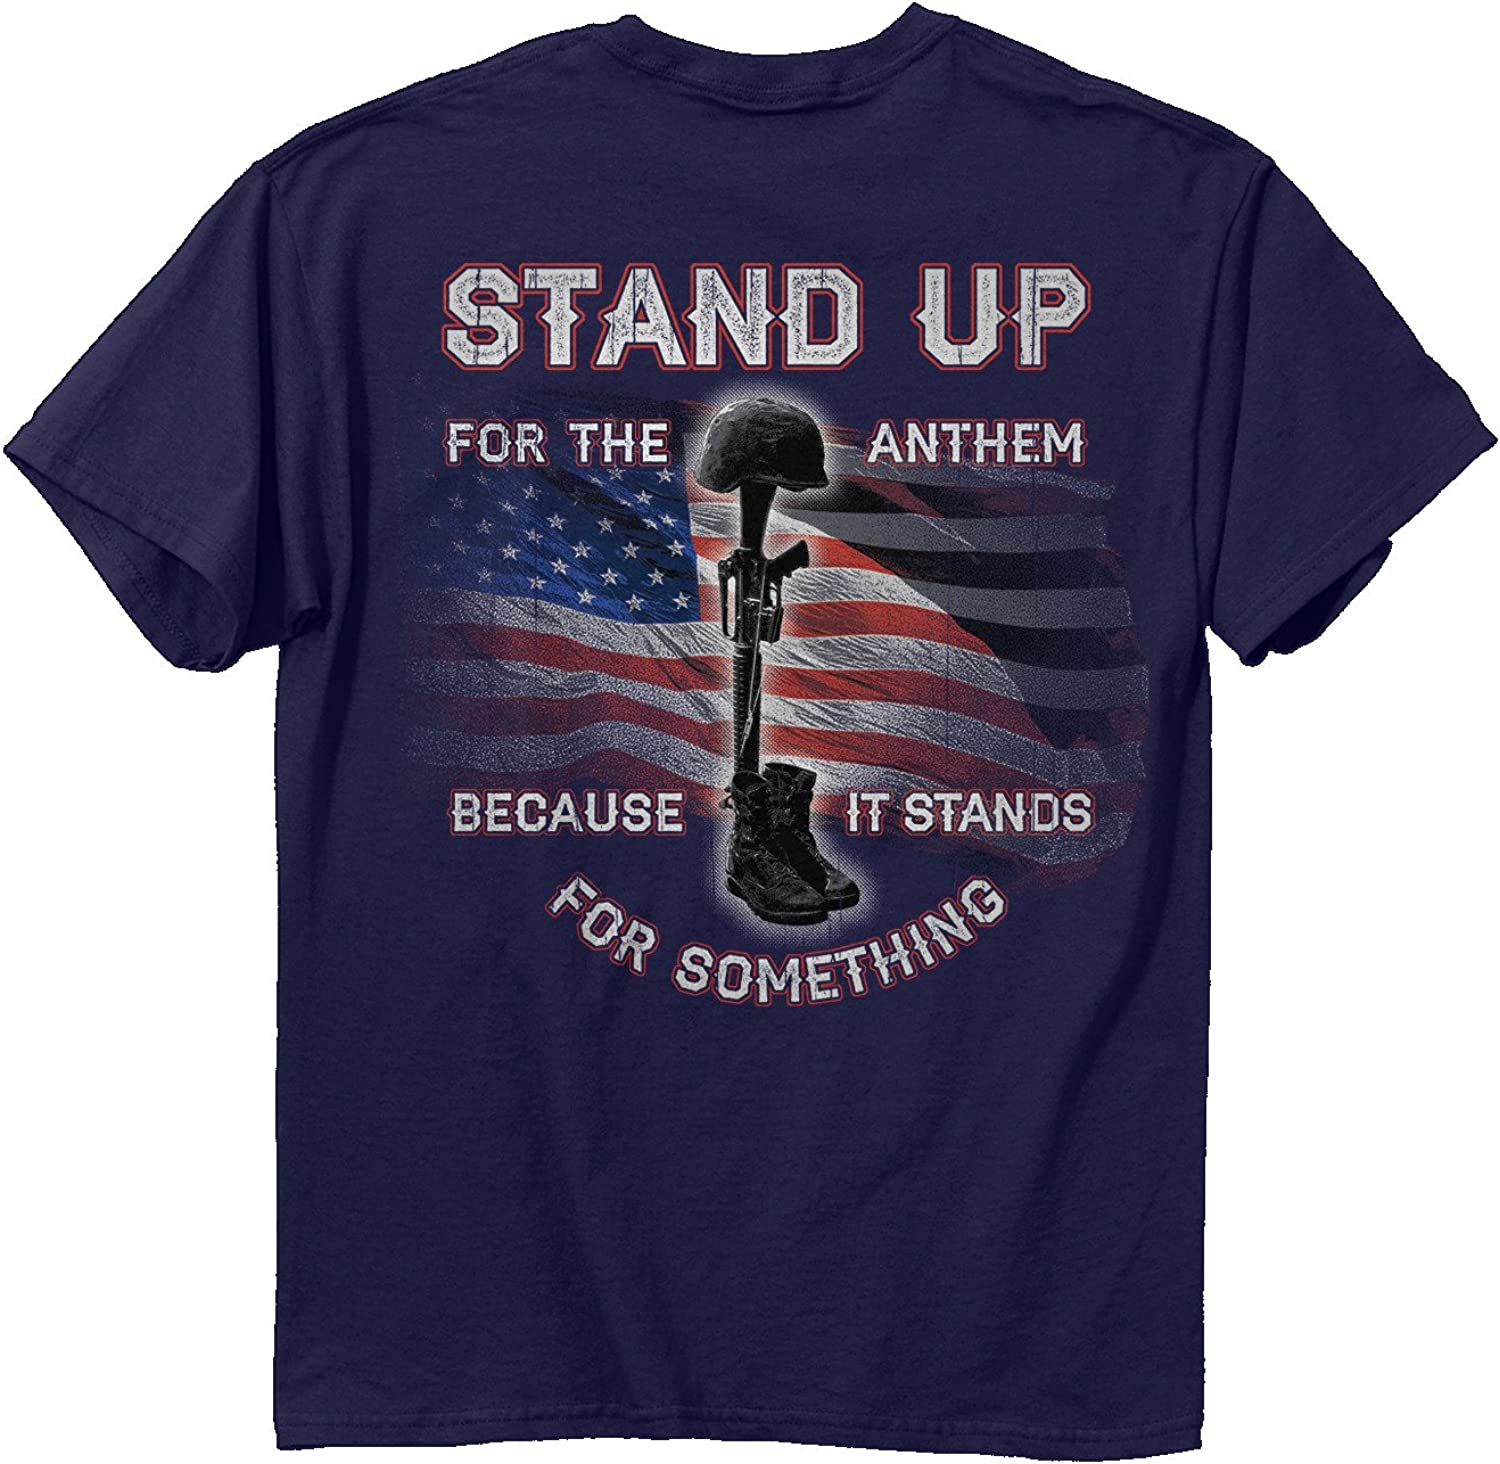 Buck Wear Unisex-Adult Stand up for The Anthem t-Shirt, Navy